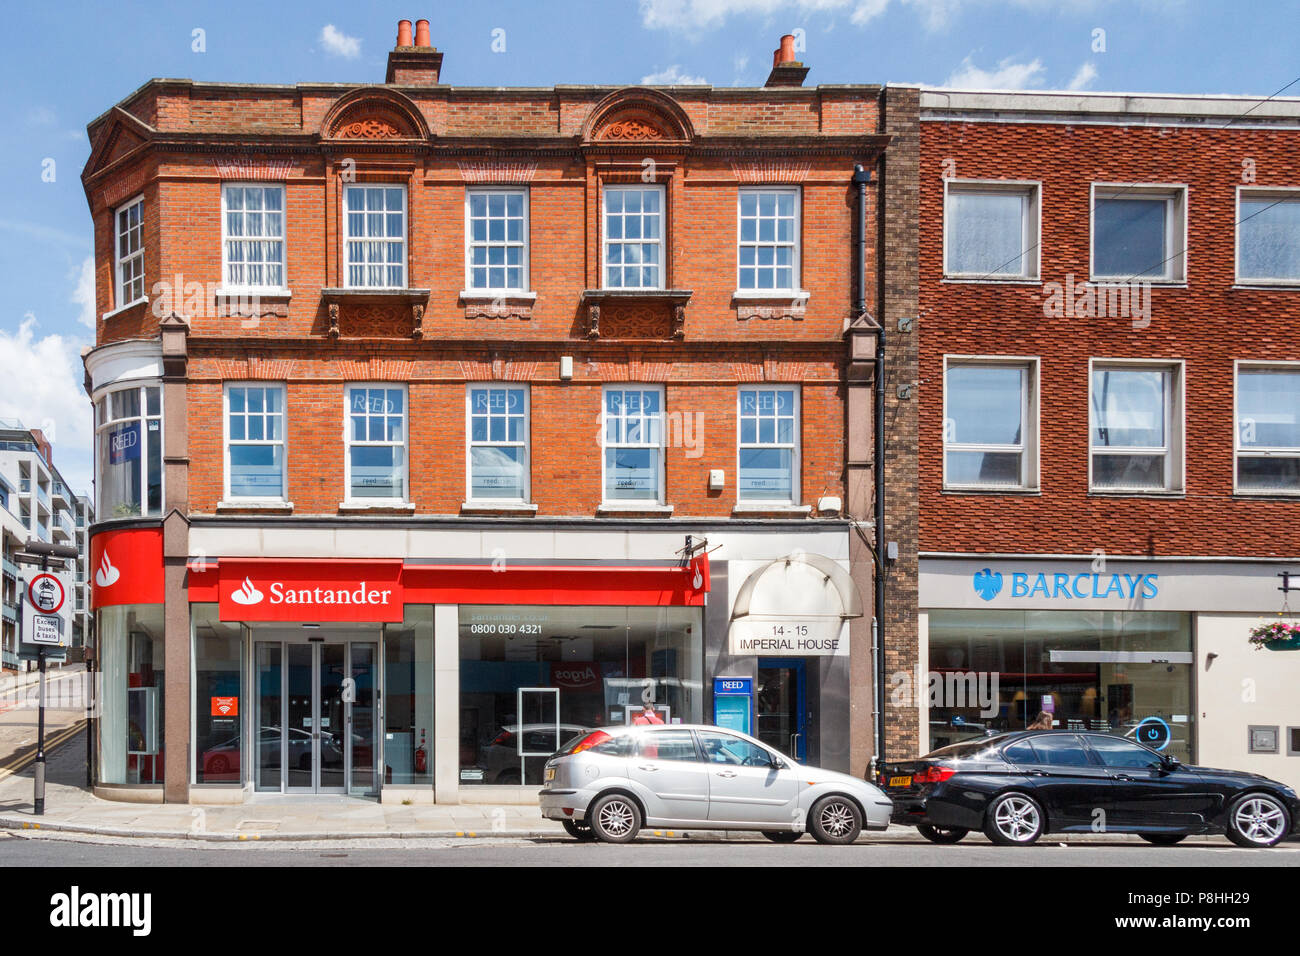 High Wycombe,UK - 3rd June 2018: The Santander and Barclays banks on High Street. Many banks are threatened with closure. - Stock Image